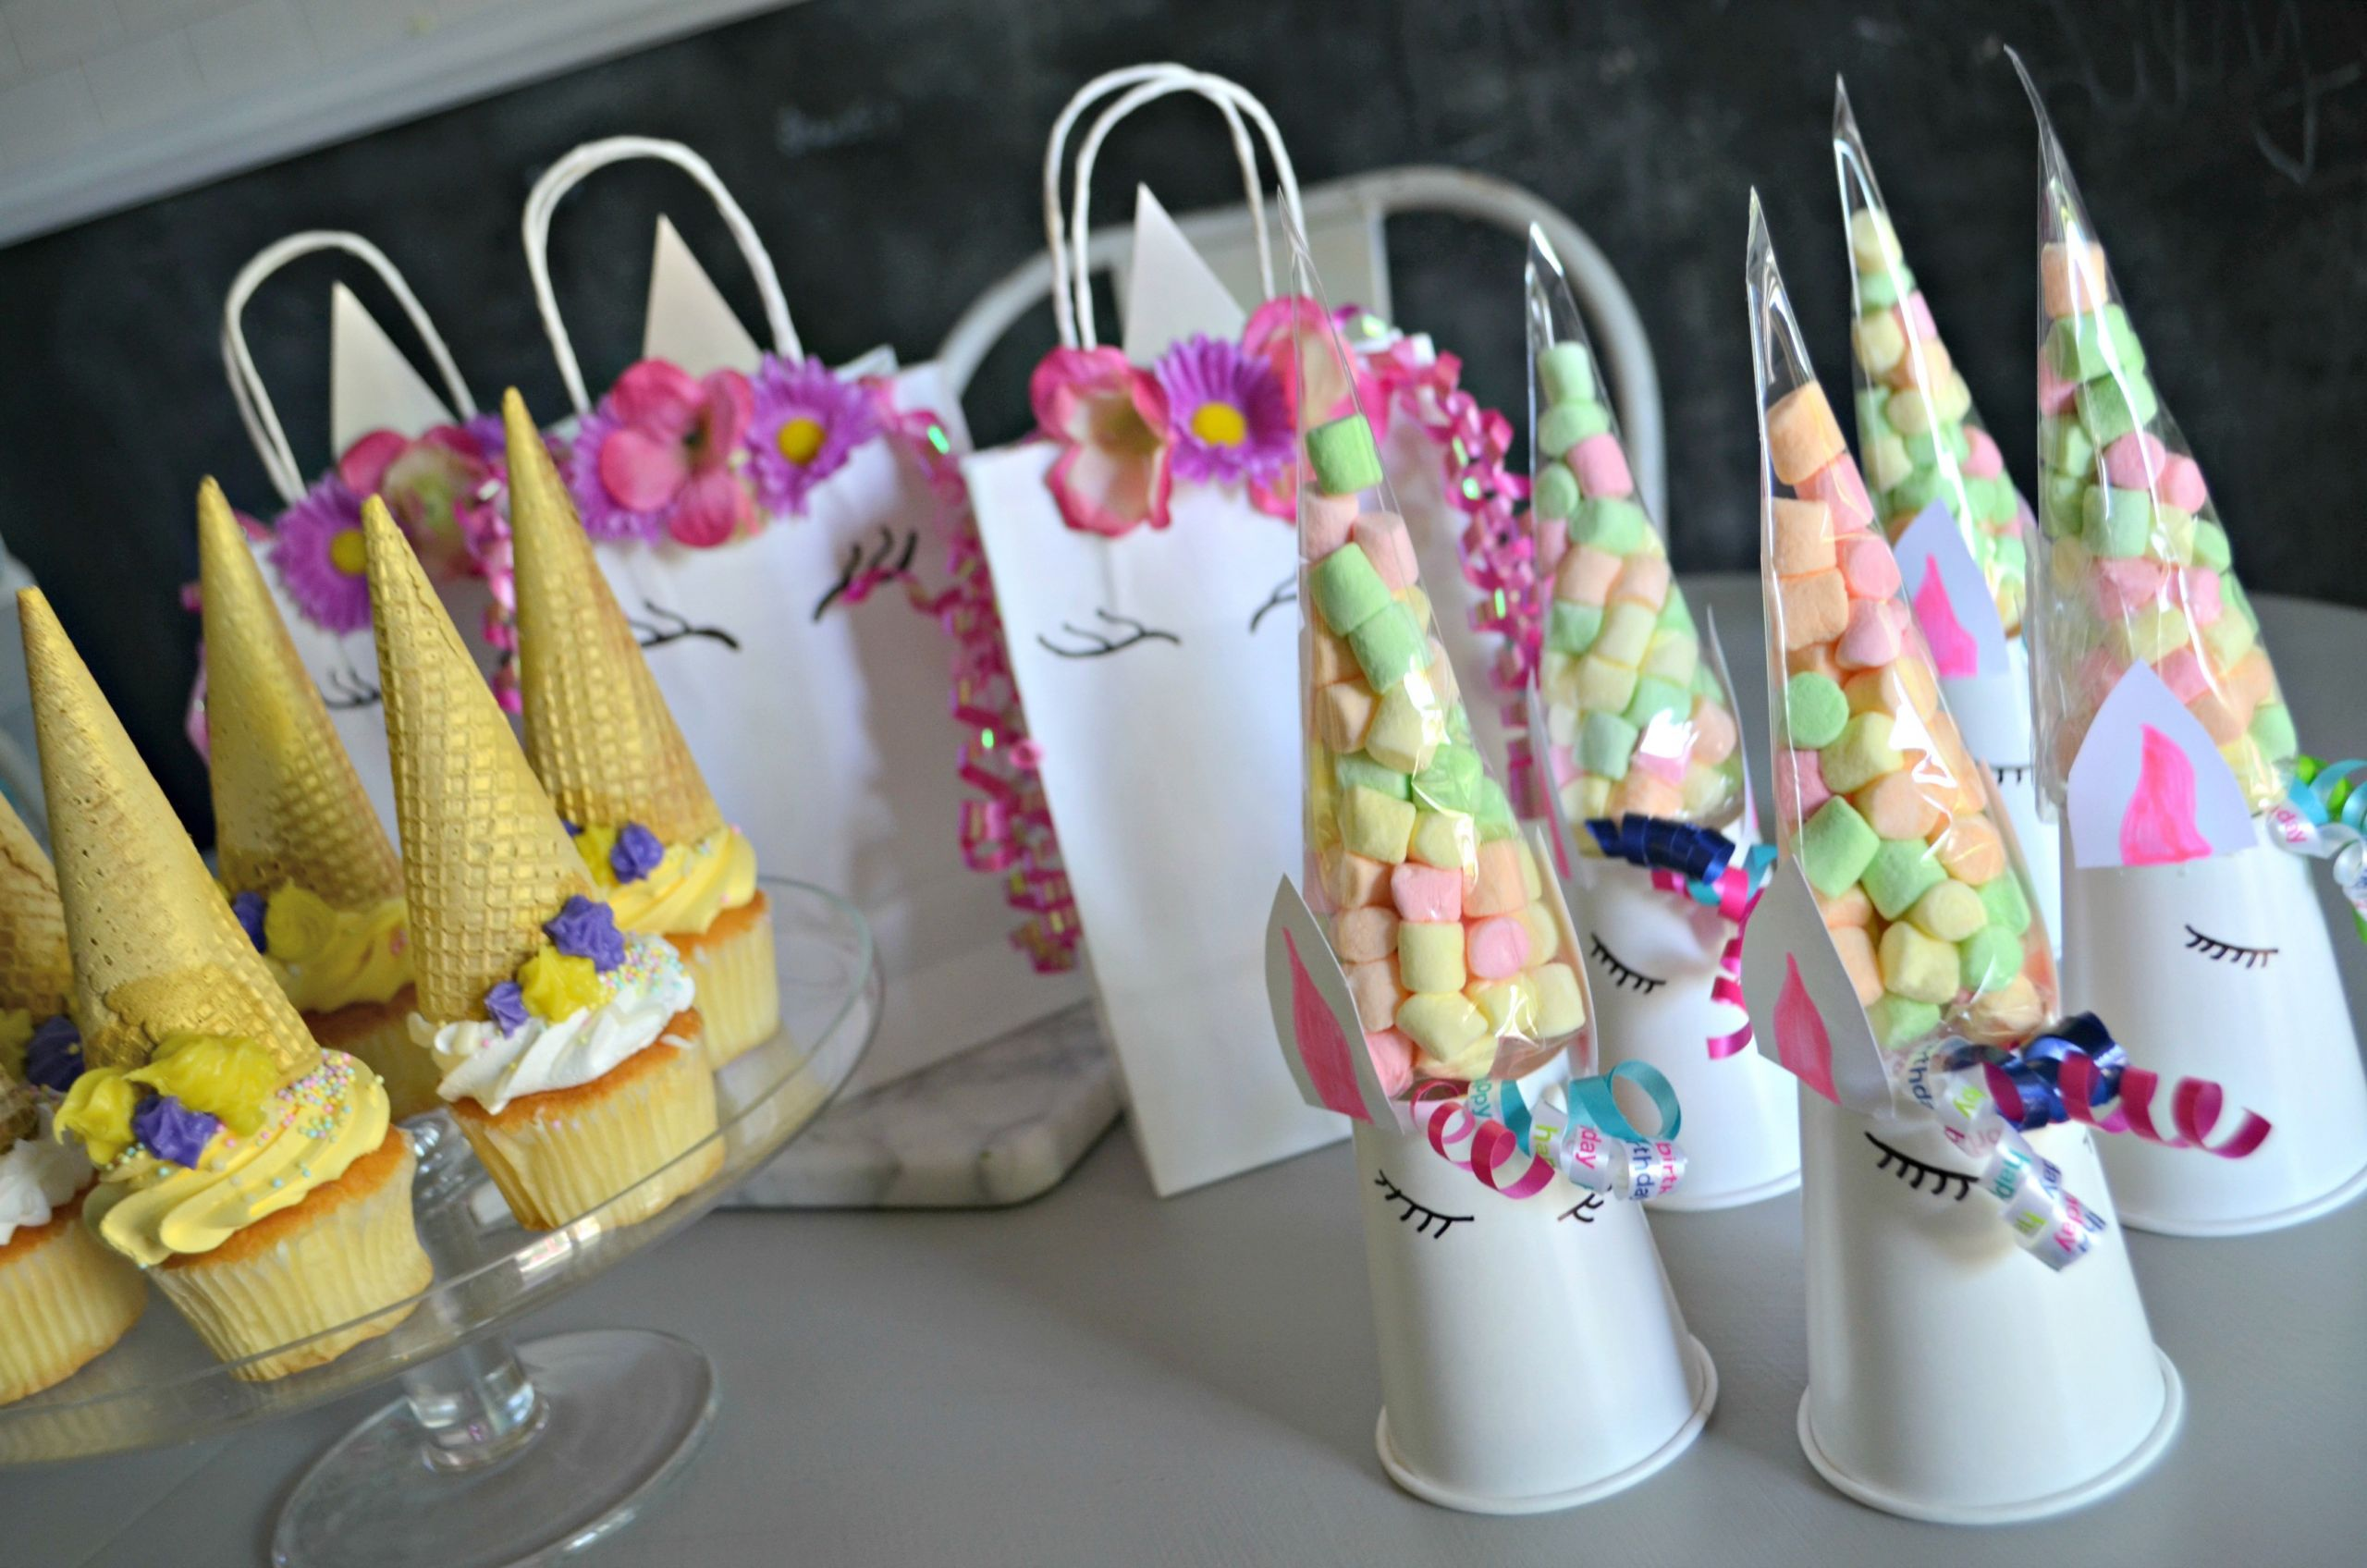 Unicorn Party Centerpiece Ideas  Make These 3 Frugal Cute and Easy DIY Unicorn Birthday